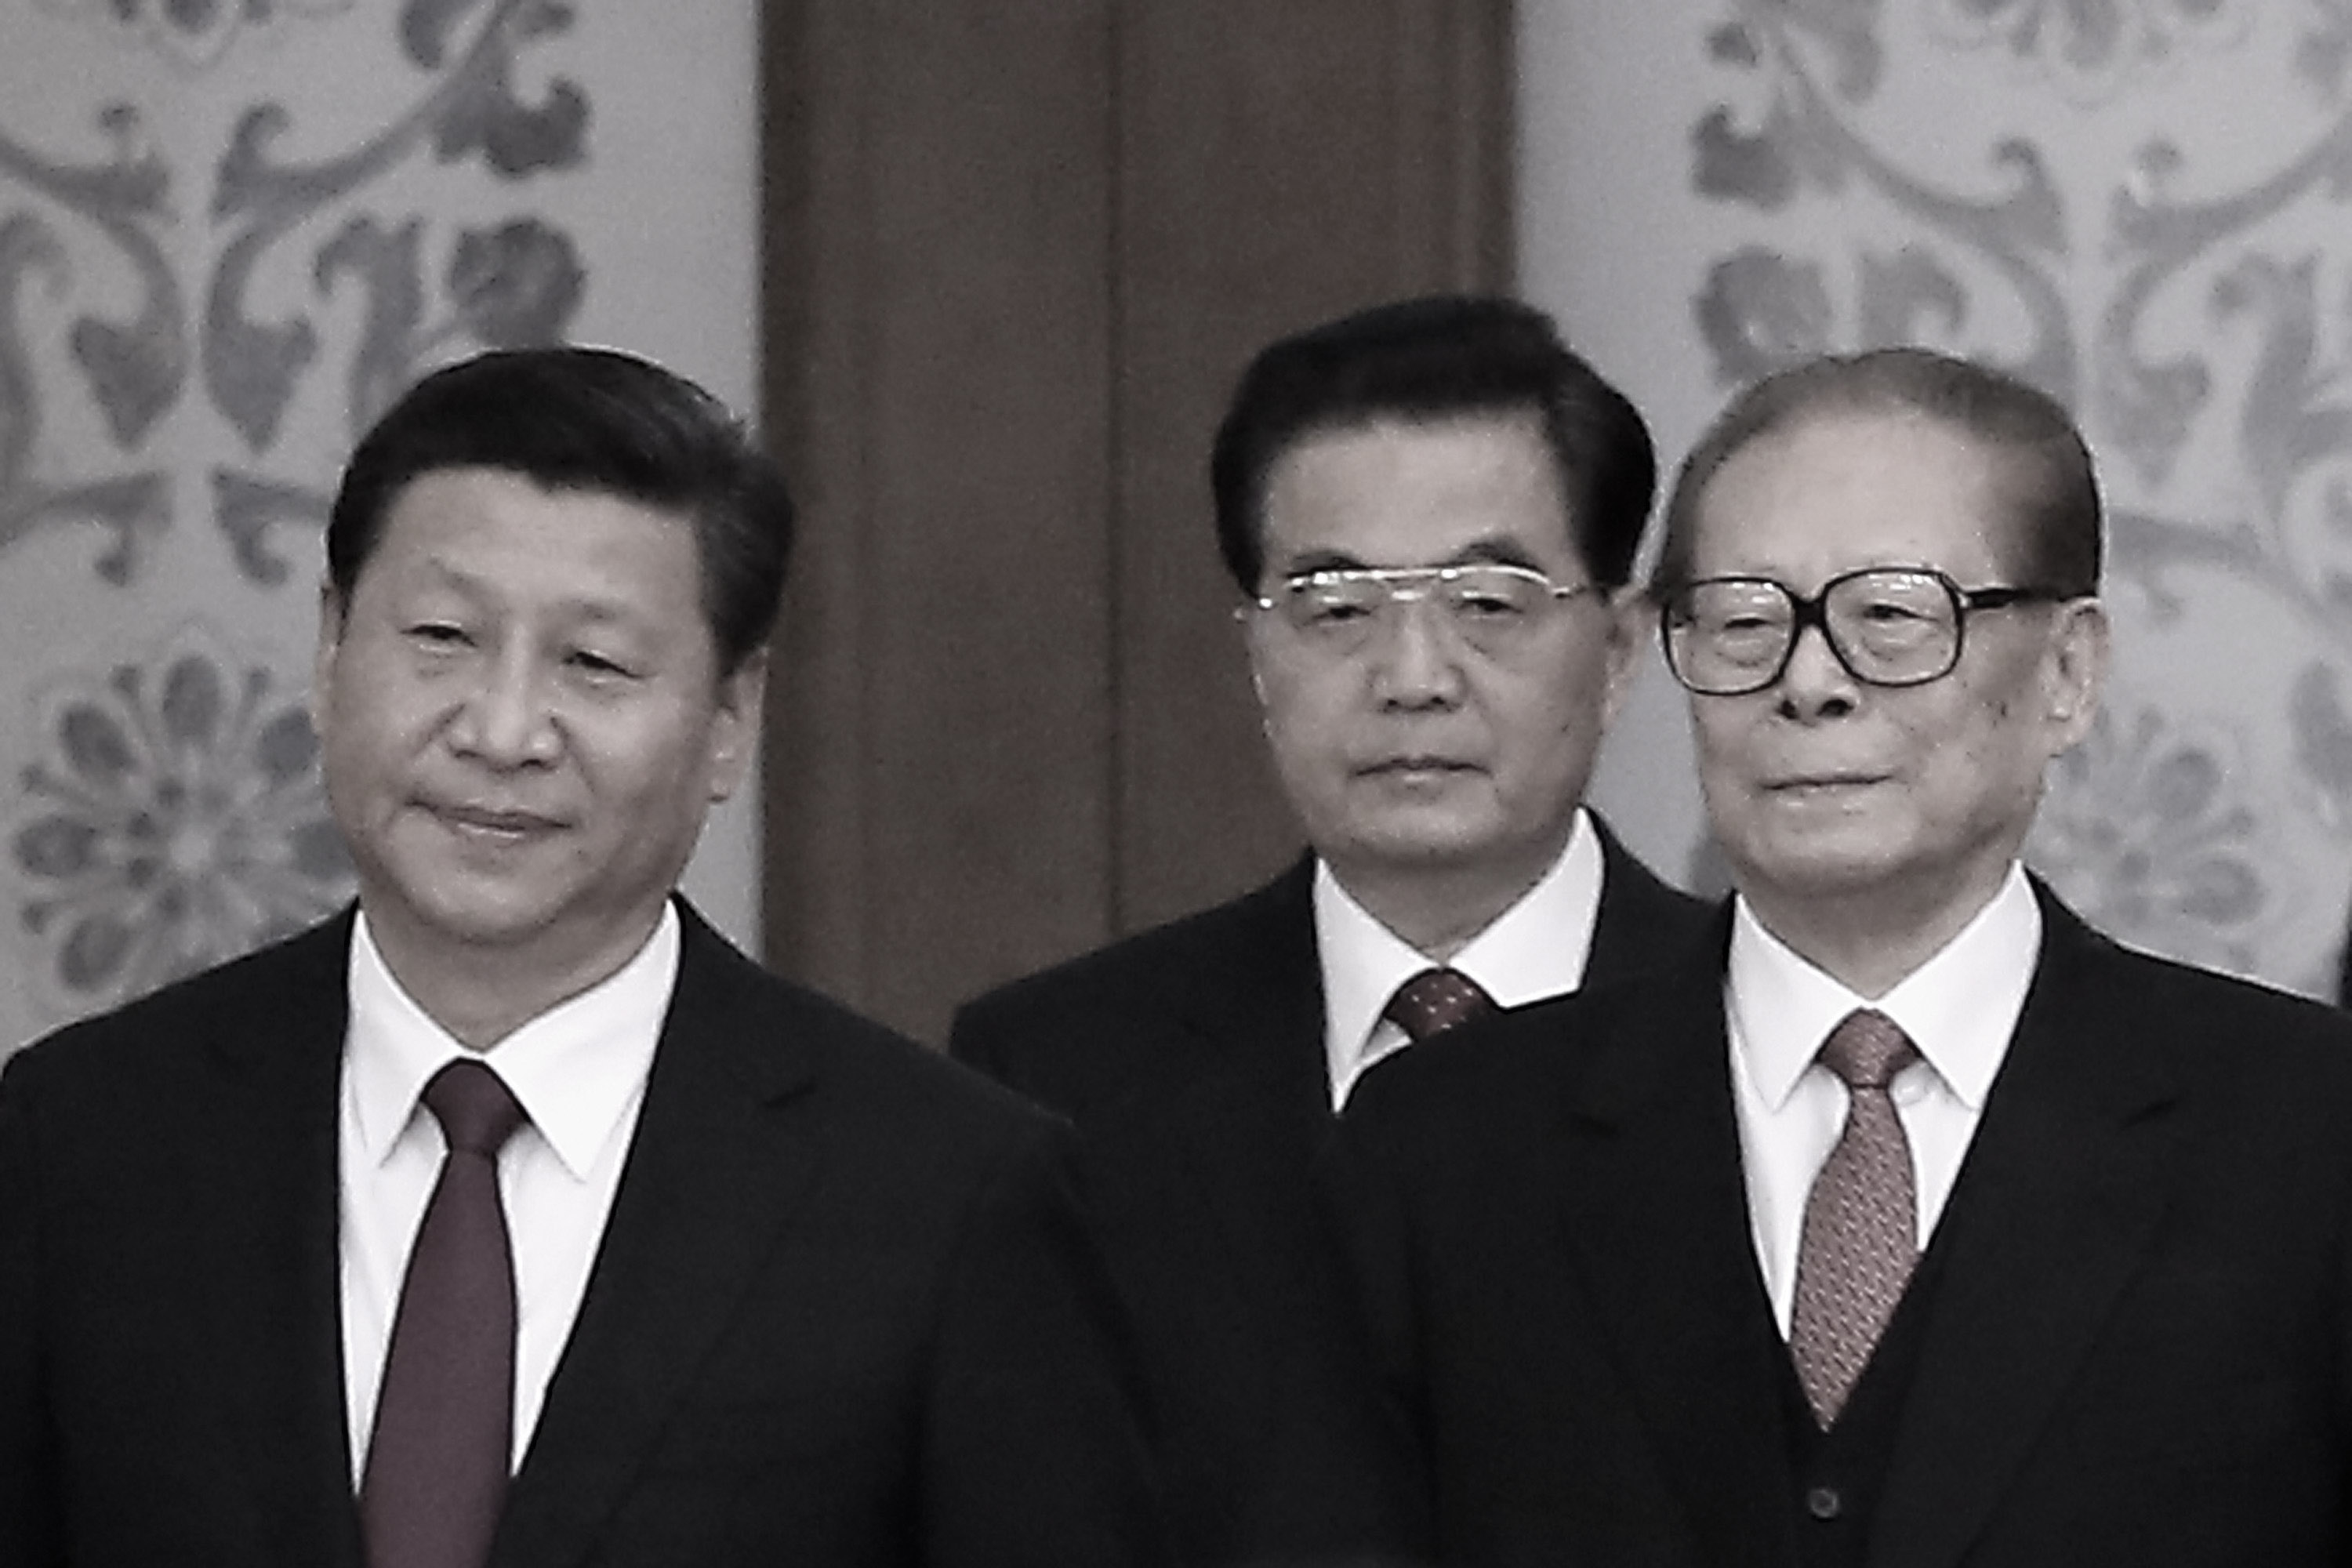 (L to R) Chinese Communist Party Head Xi Jinping and his predecessors Hu Jintao and Jiang Zemin on Sept. 30, 2014 in Beijing, China. Since taking power in November 2012, Xi has worked to dismantle the faction headed by Jiang Zemin. (Feng Li/Getty Images)